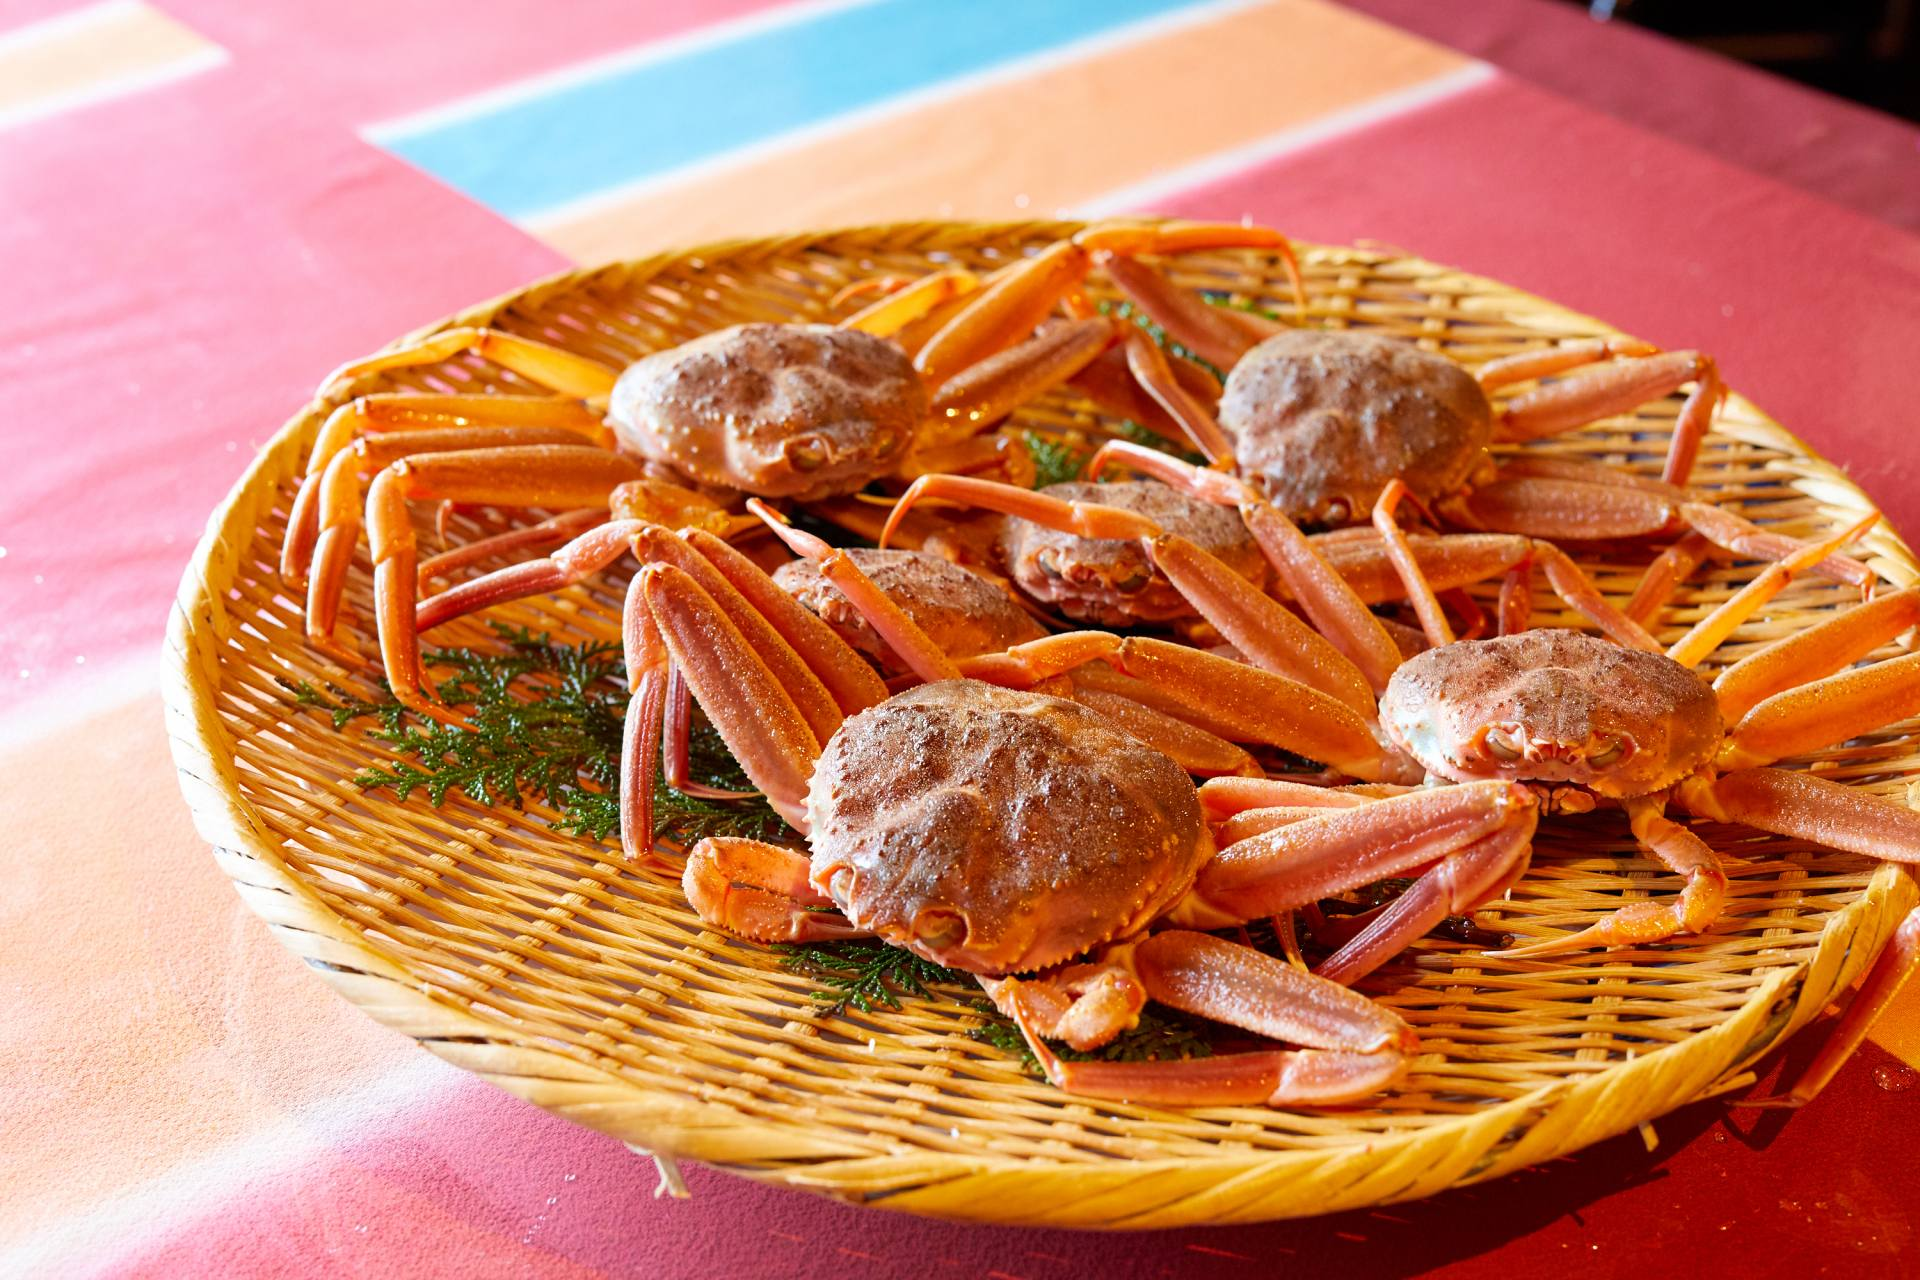 The female snow crab used for cooking. Cute and round eyes.